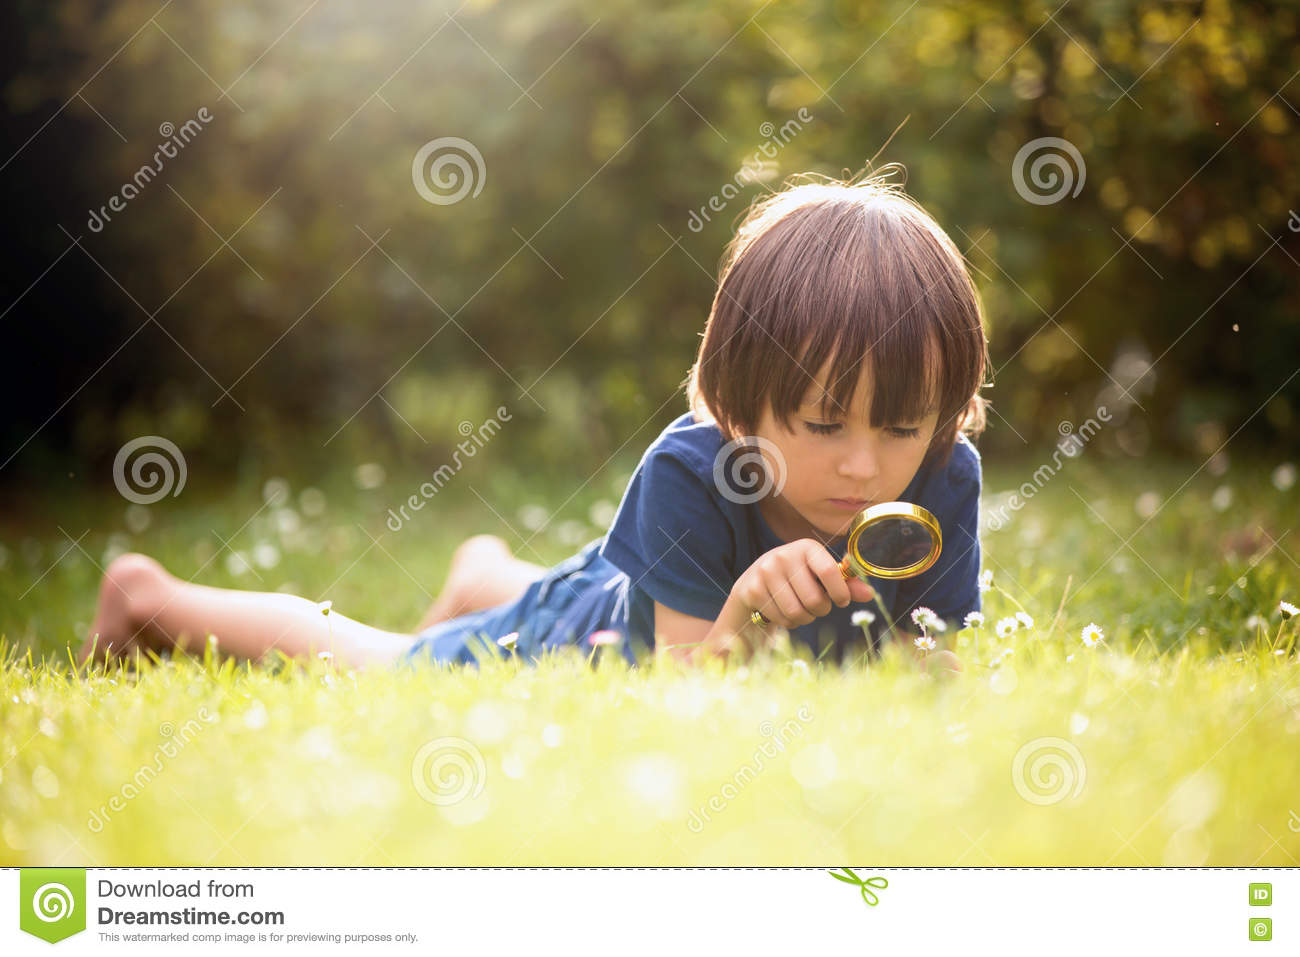 Beautiful happy child, boy, exploring nature with magnifying glass, summertime